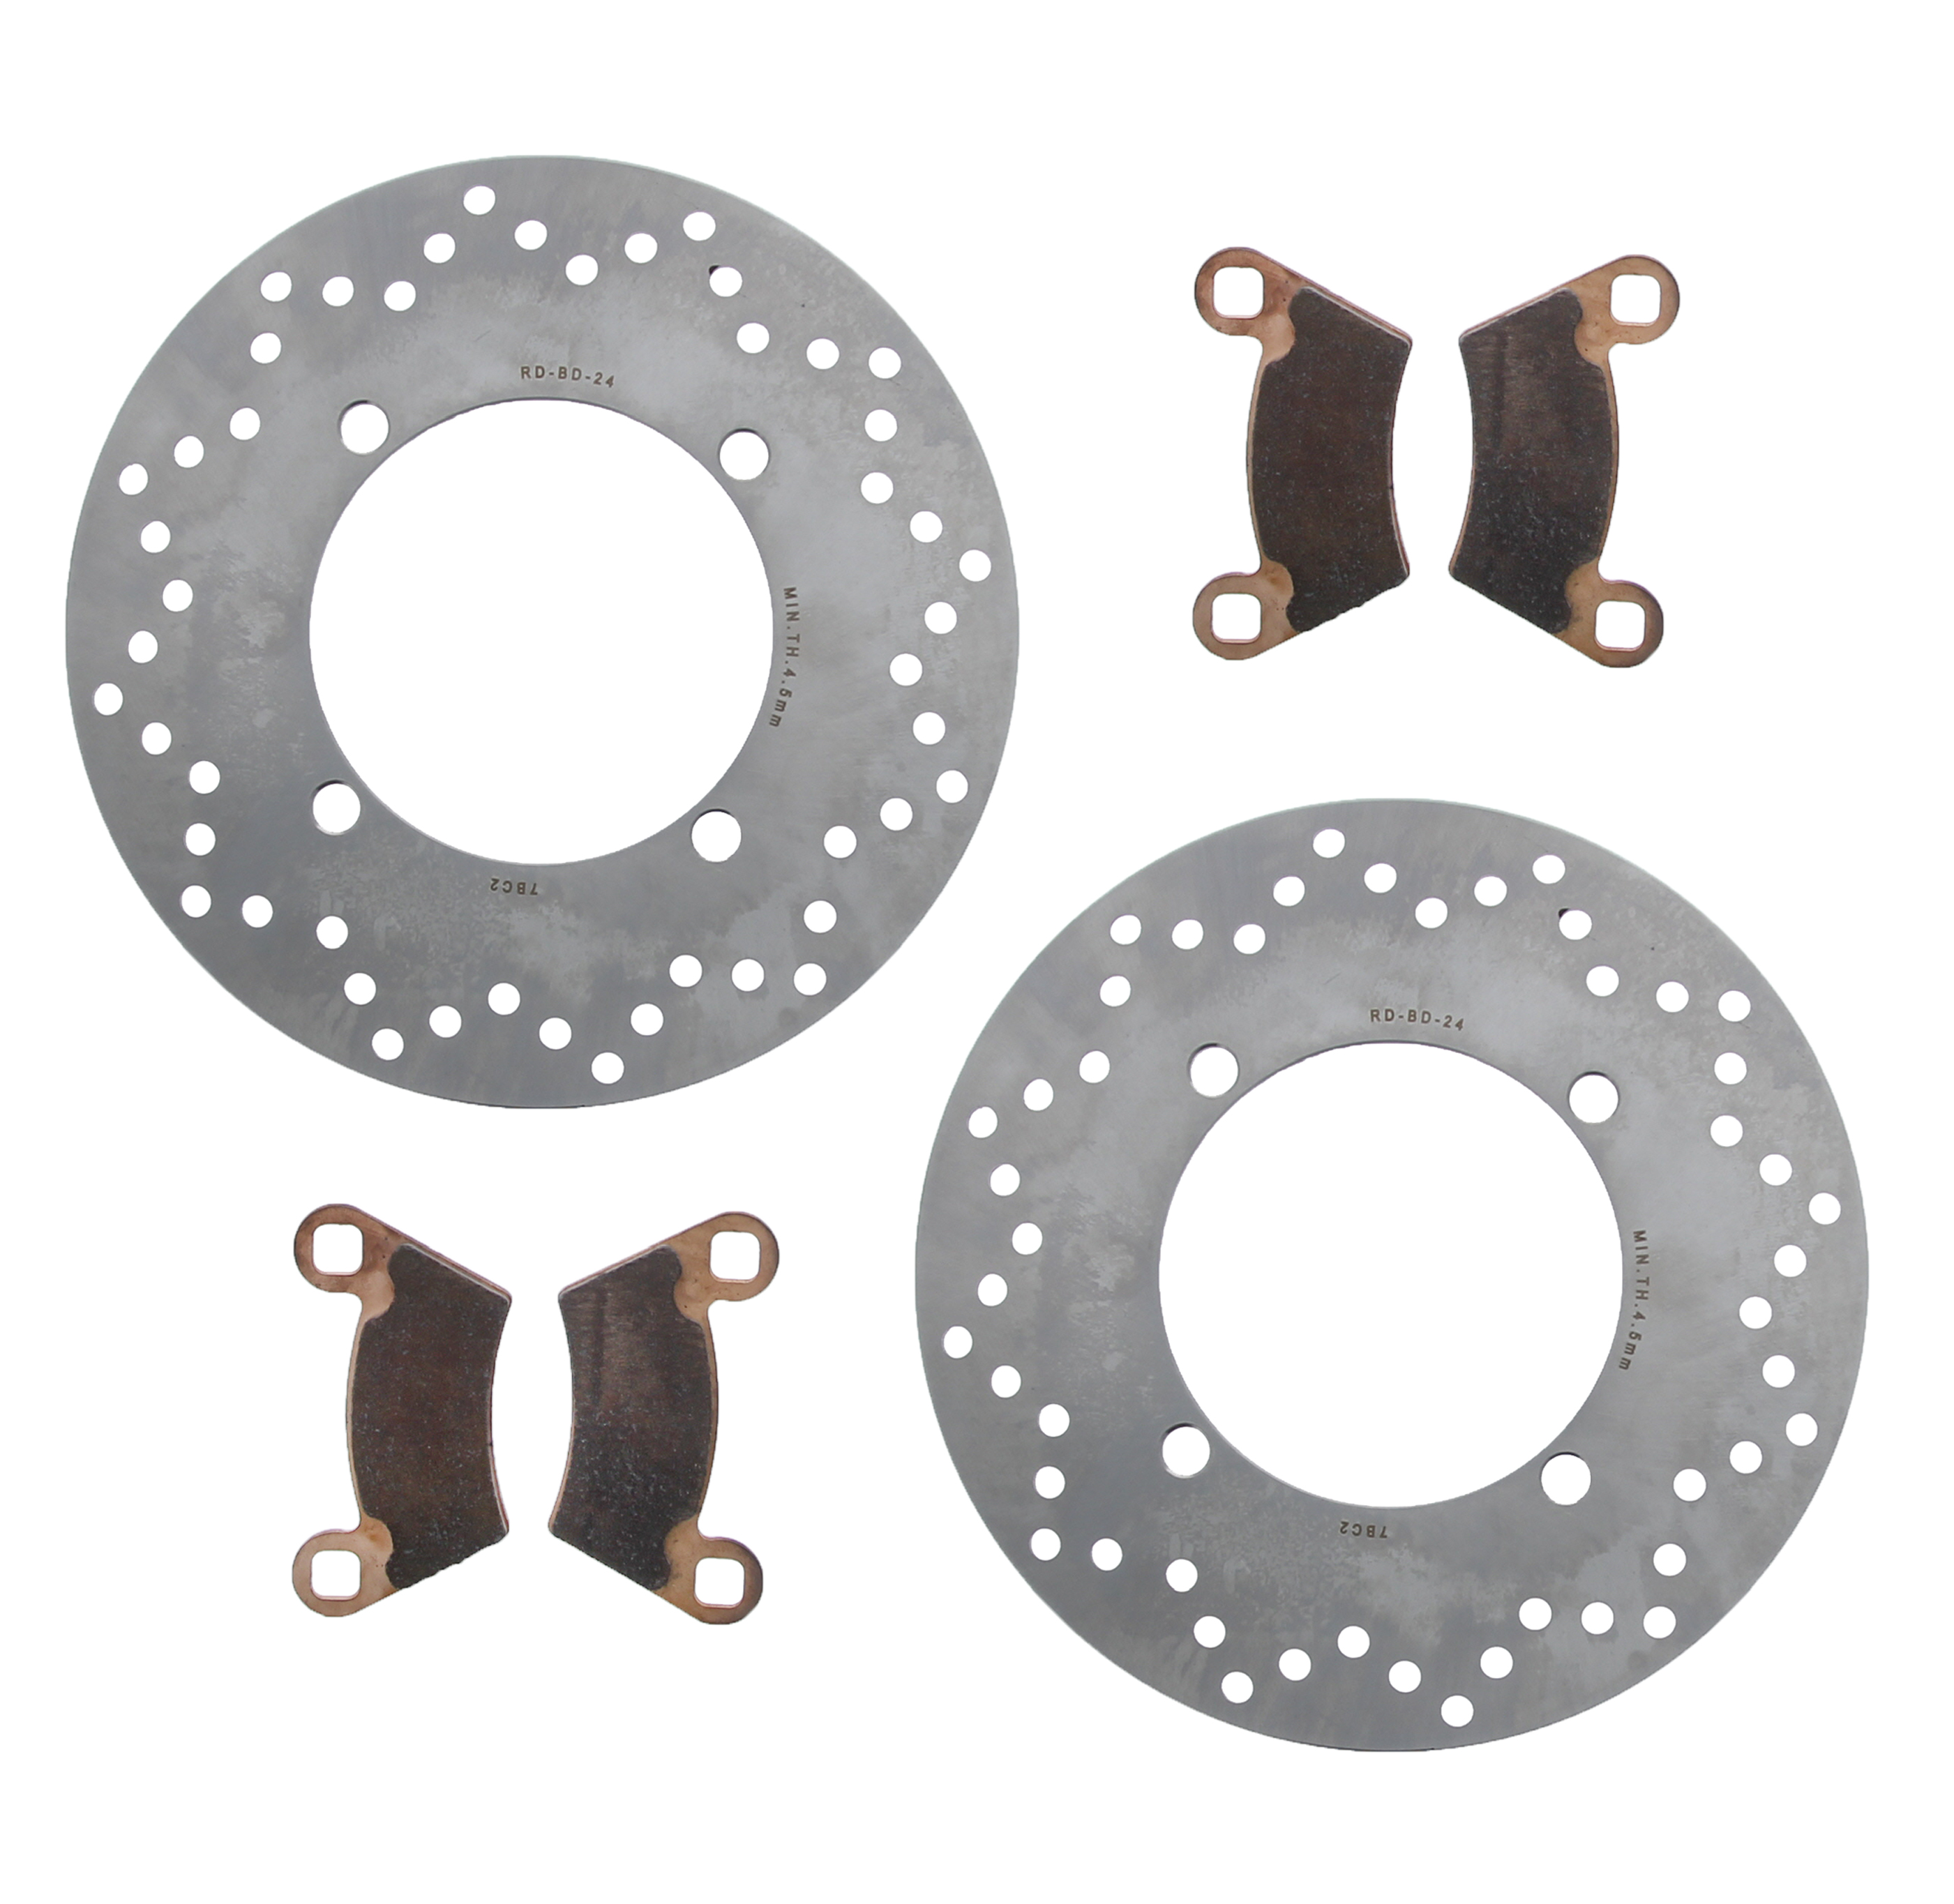 Brake Pads for Polaris RZR Pro XP 4 2020 MudRat Front and Rear by Race-Driven